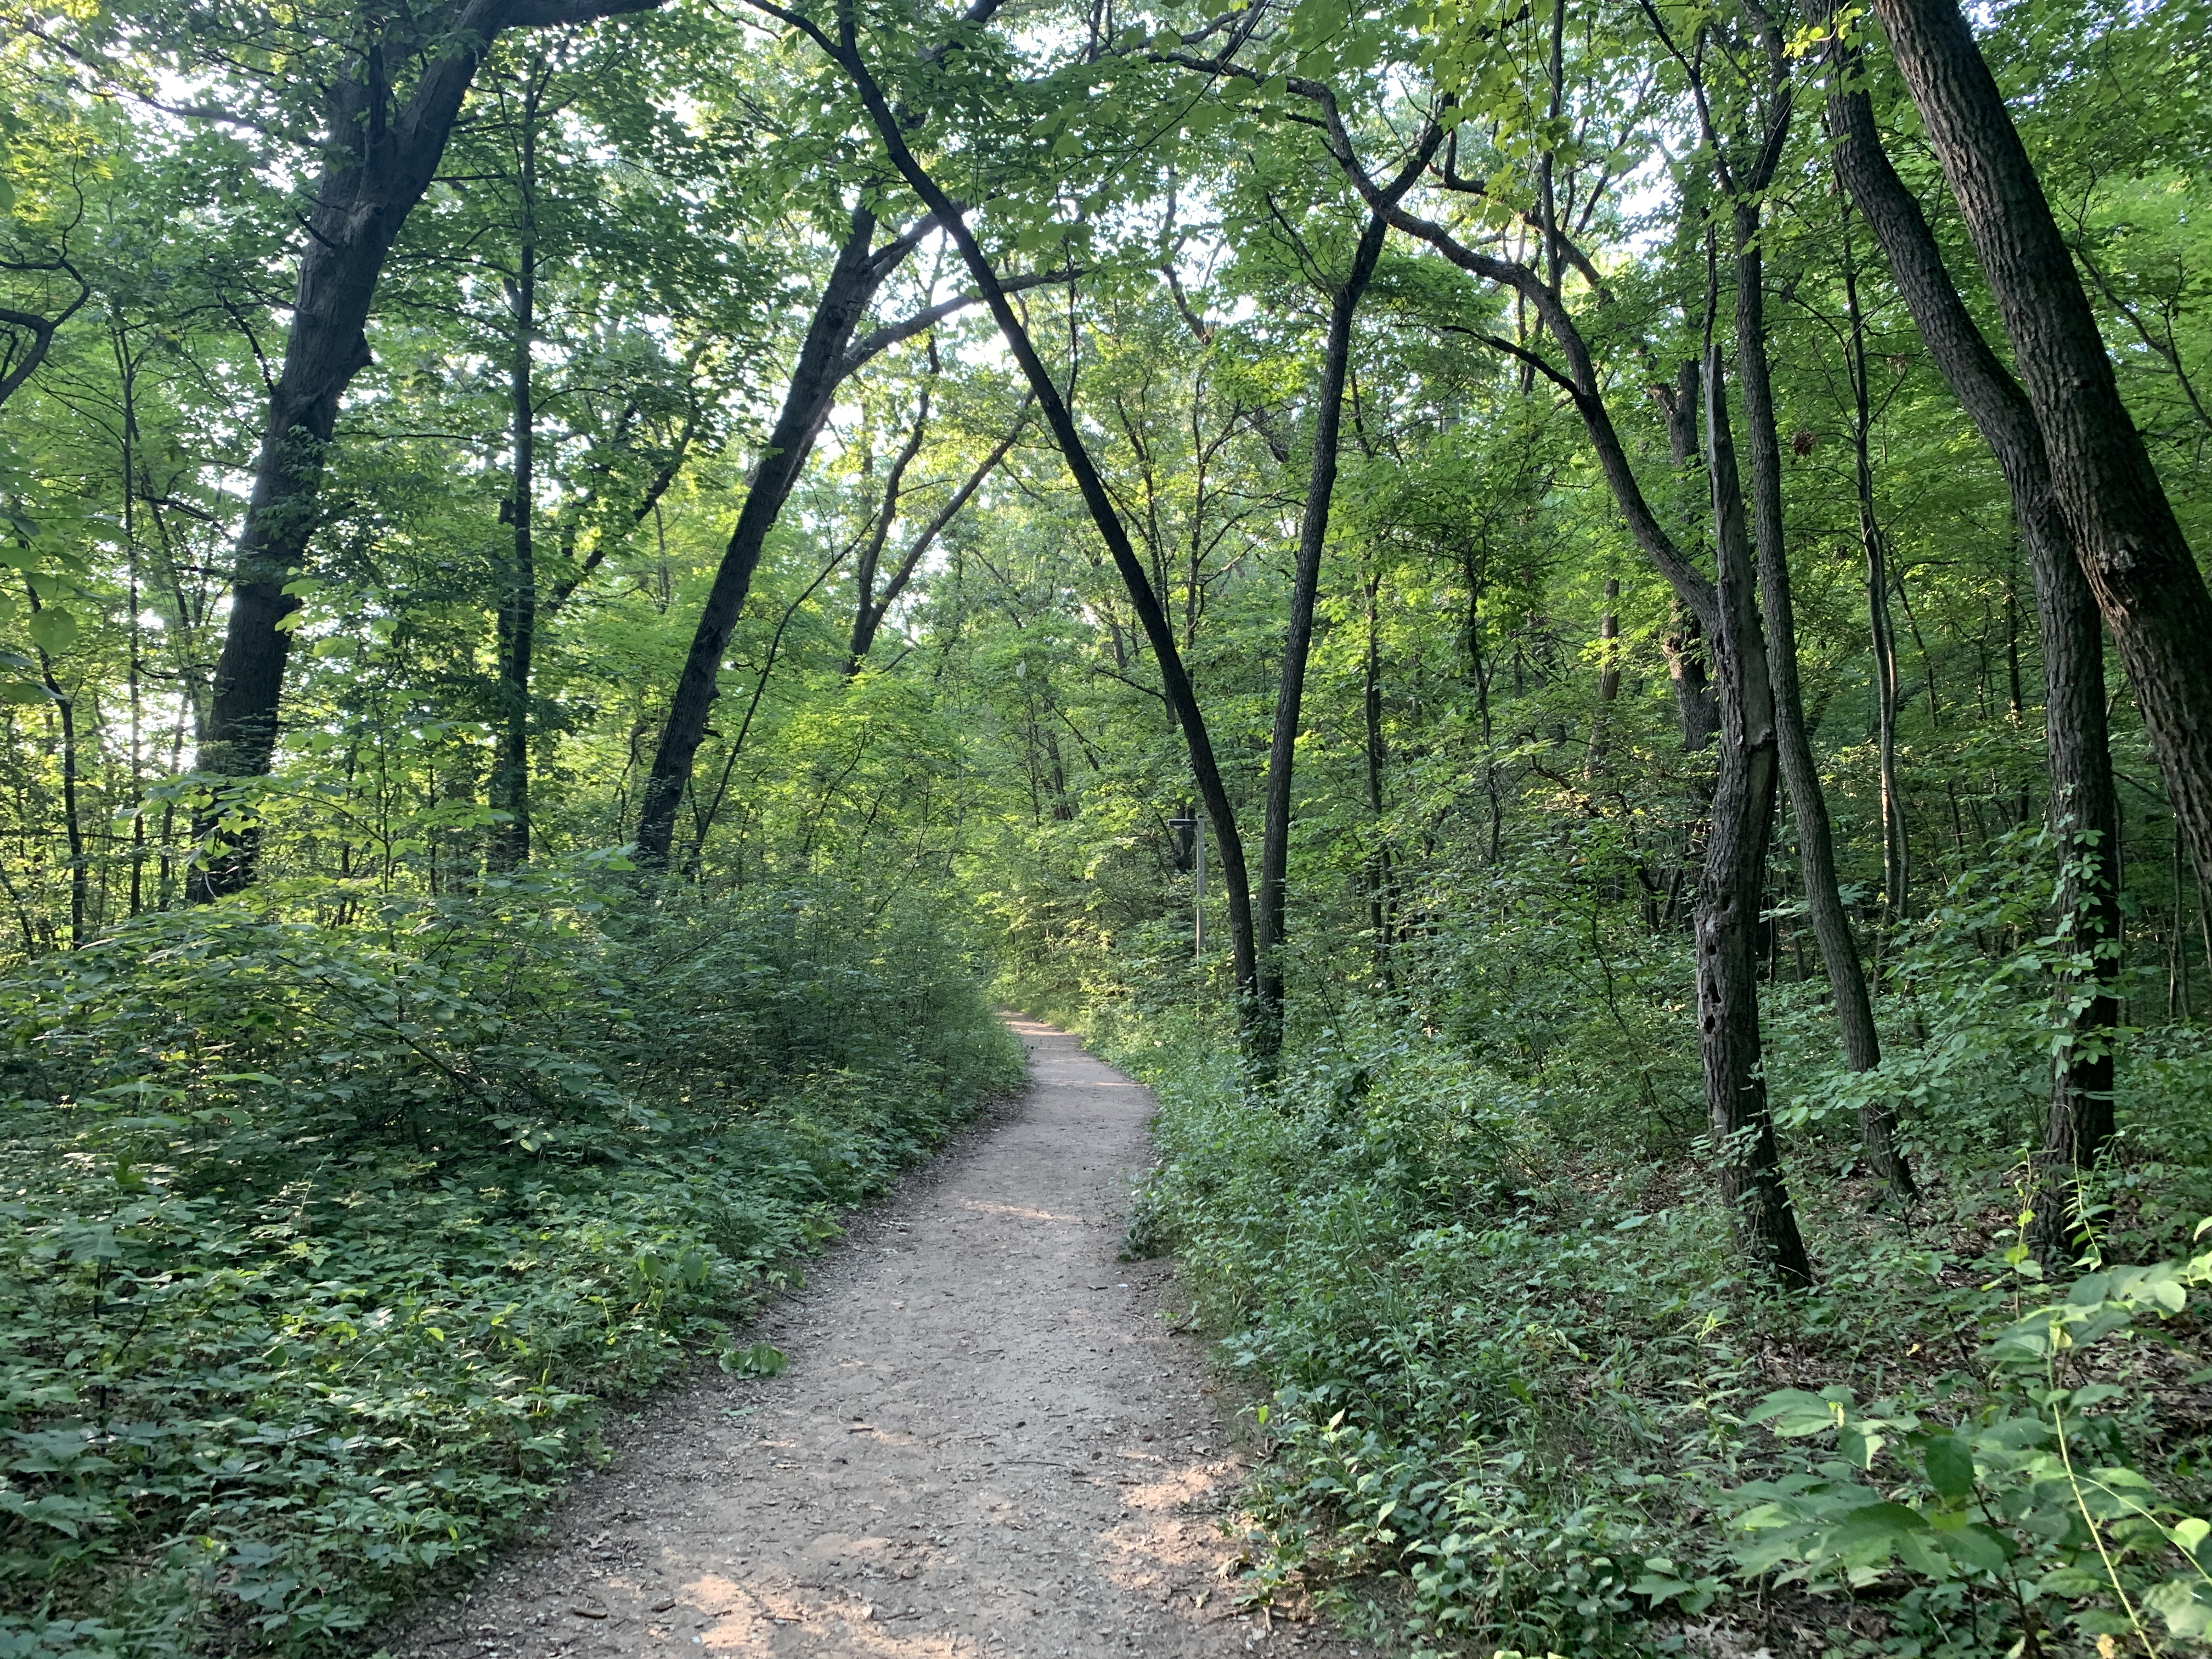 Hiking in Indiana Dunes National Park